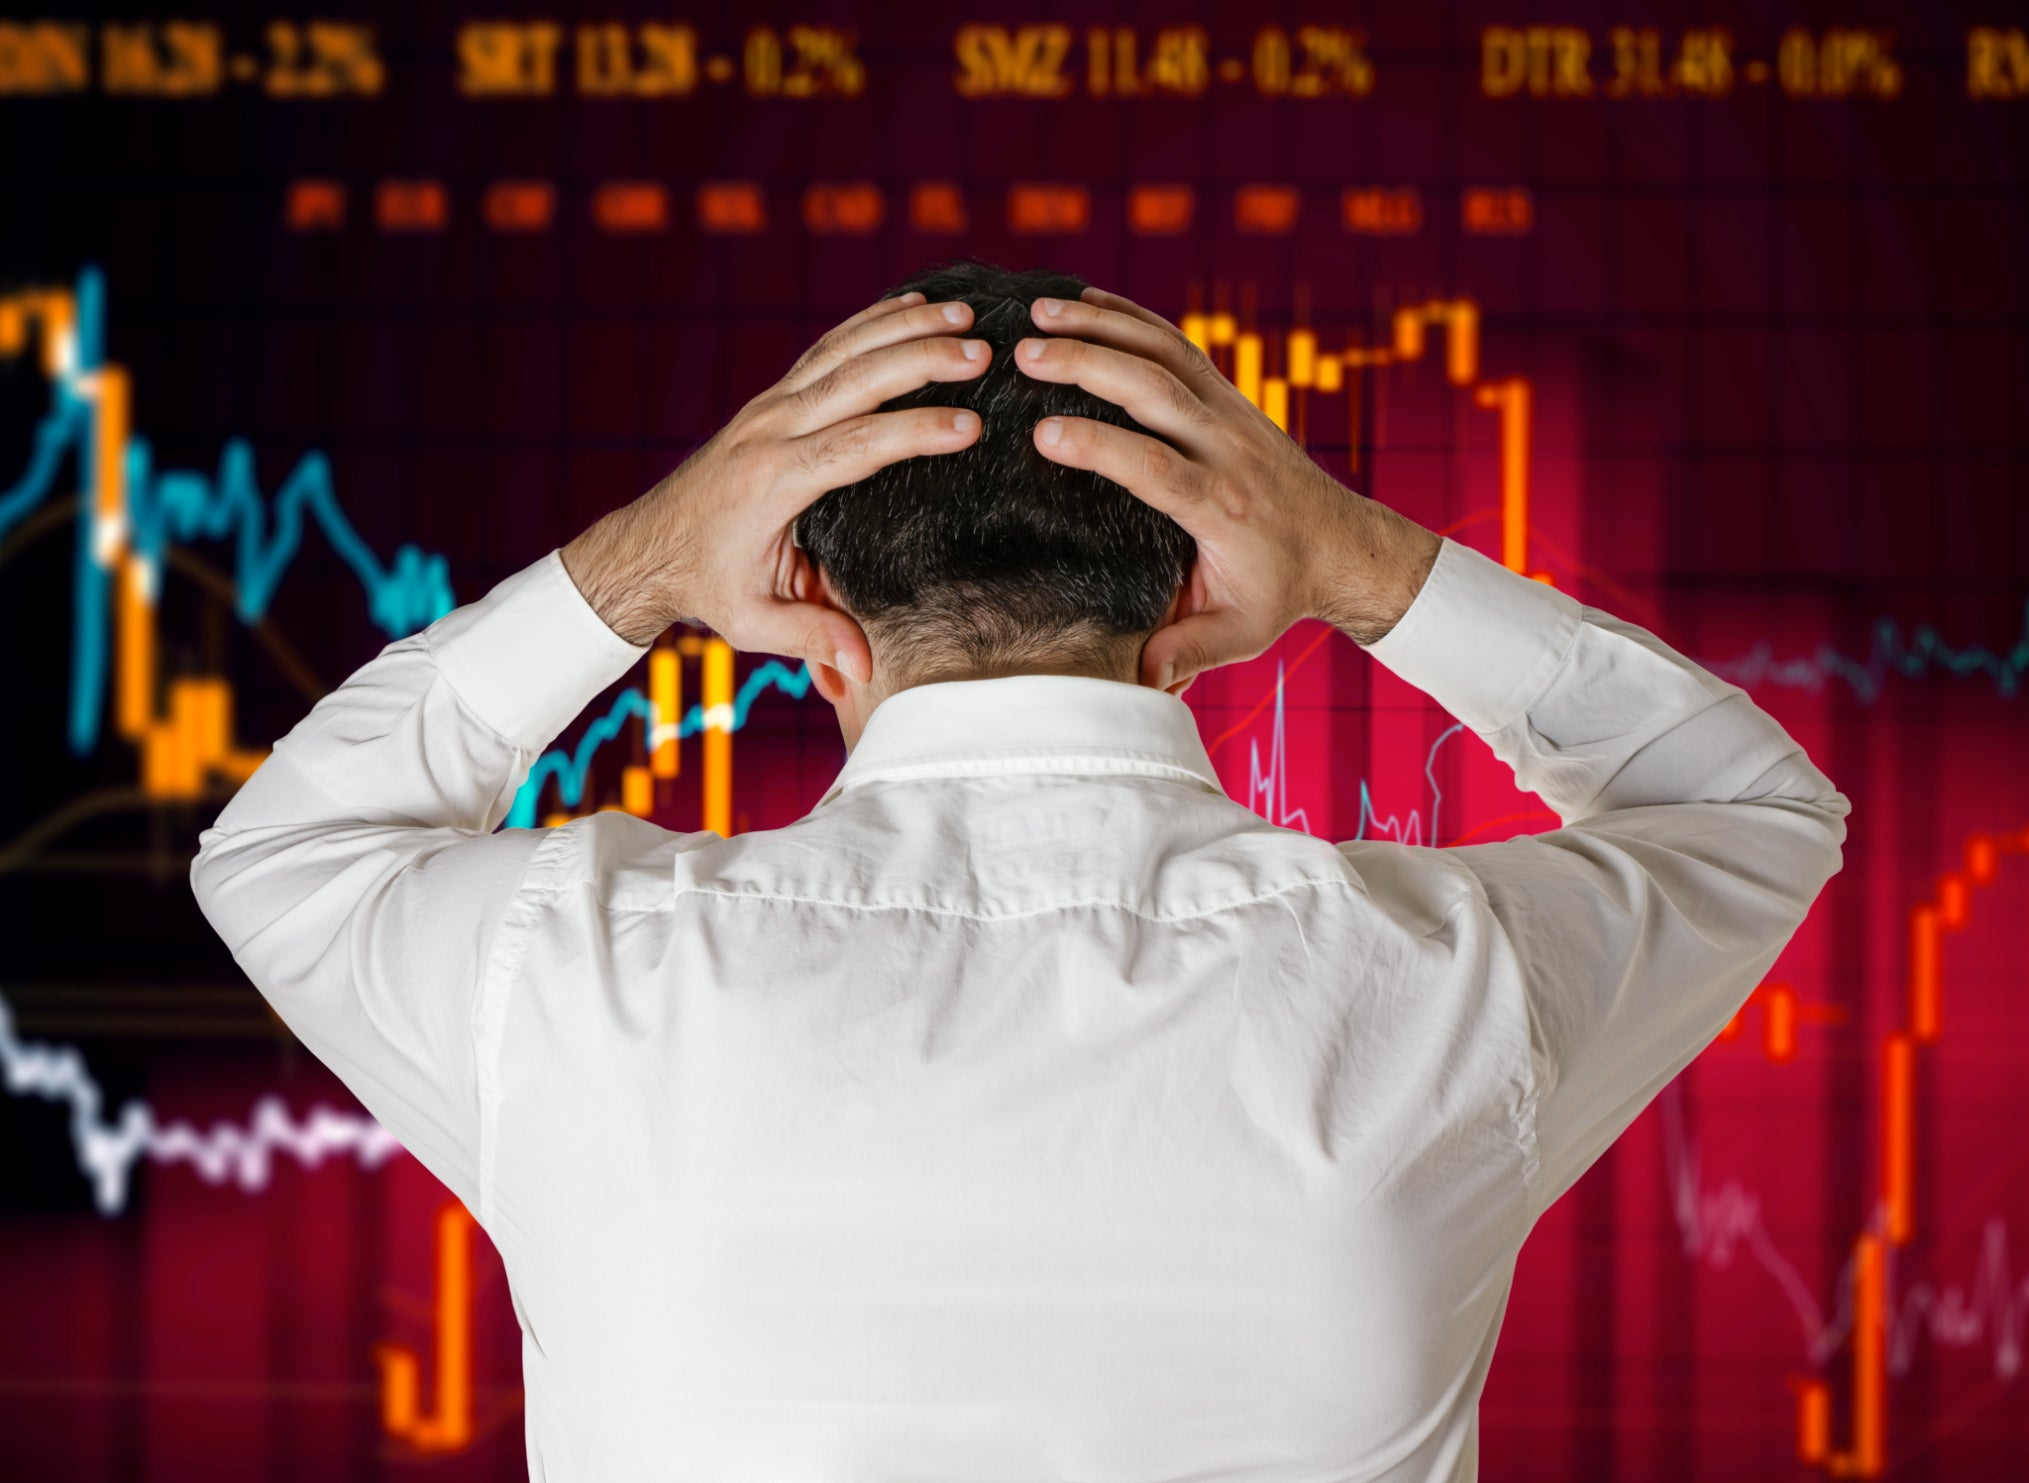 5 Reasons Not to Worry About Another Stock Market Crash